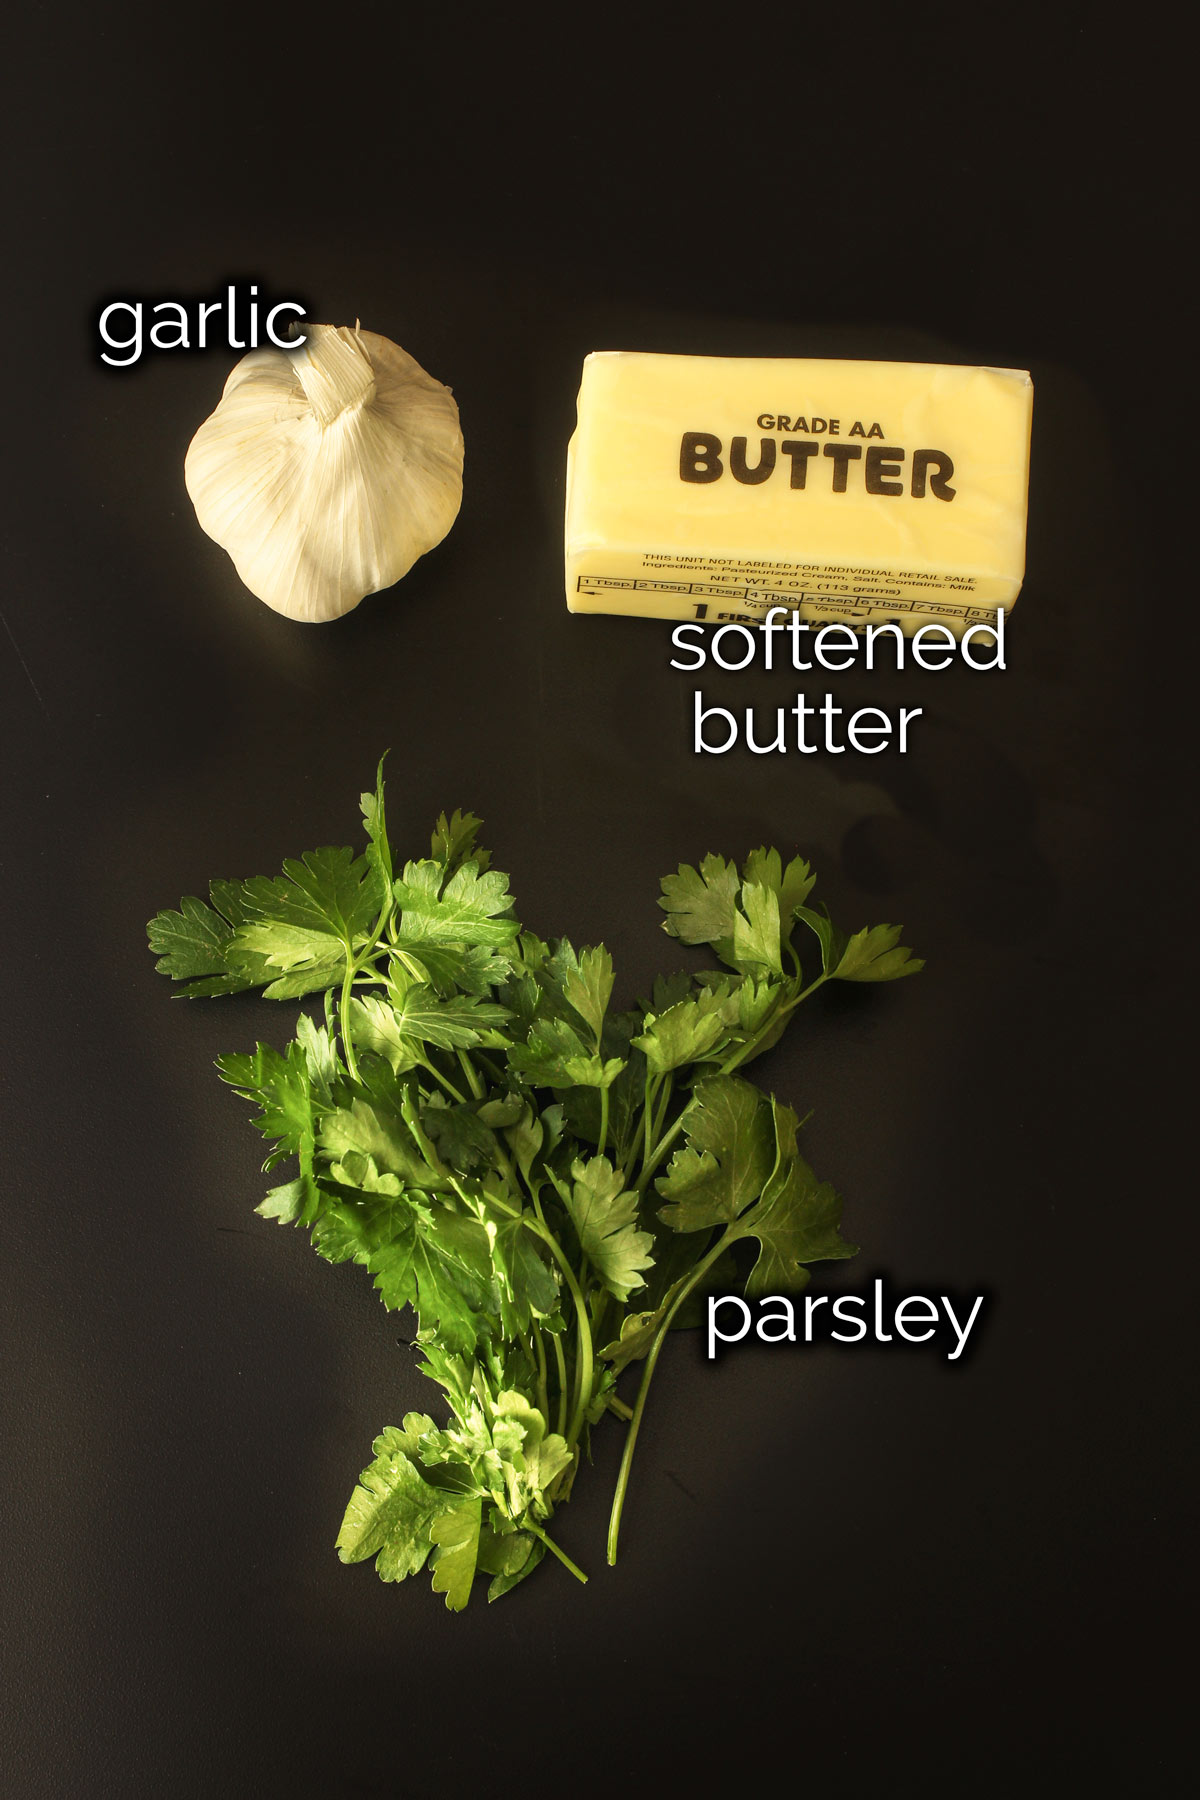 ingredients for garlic butter laid out on a black table.